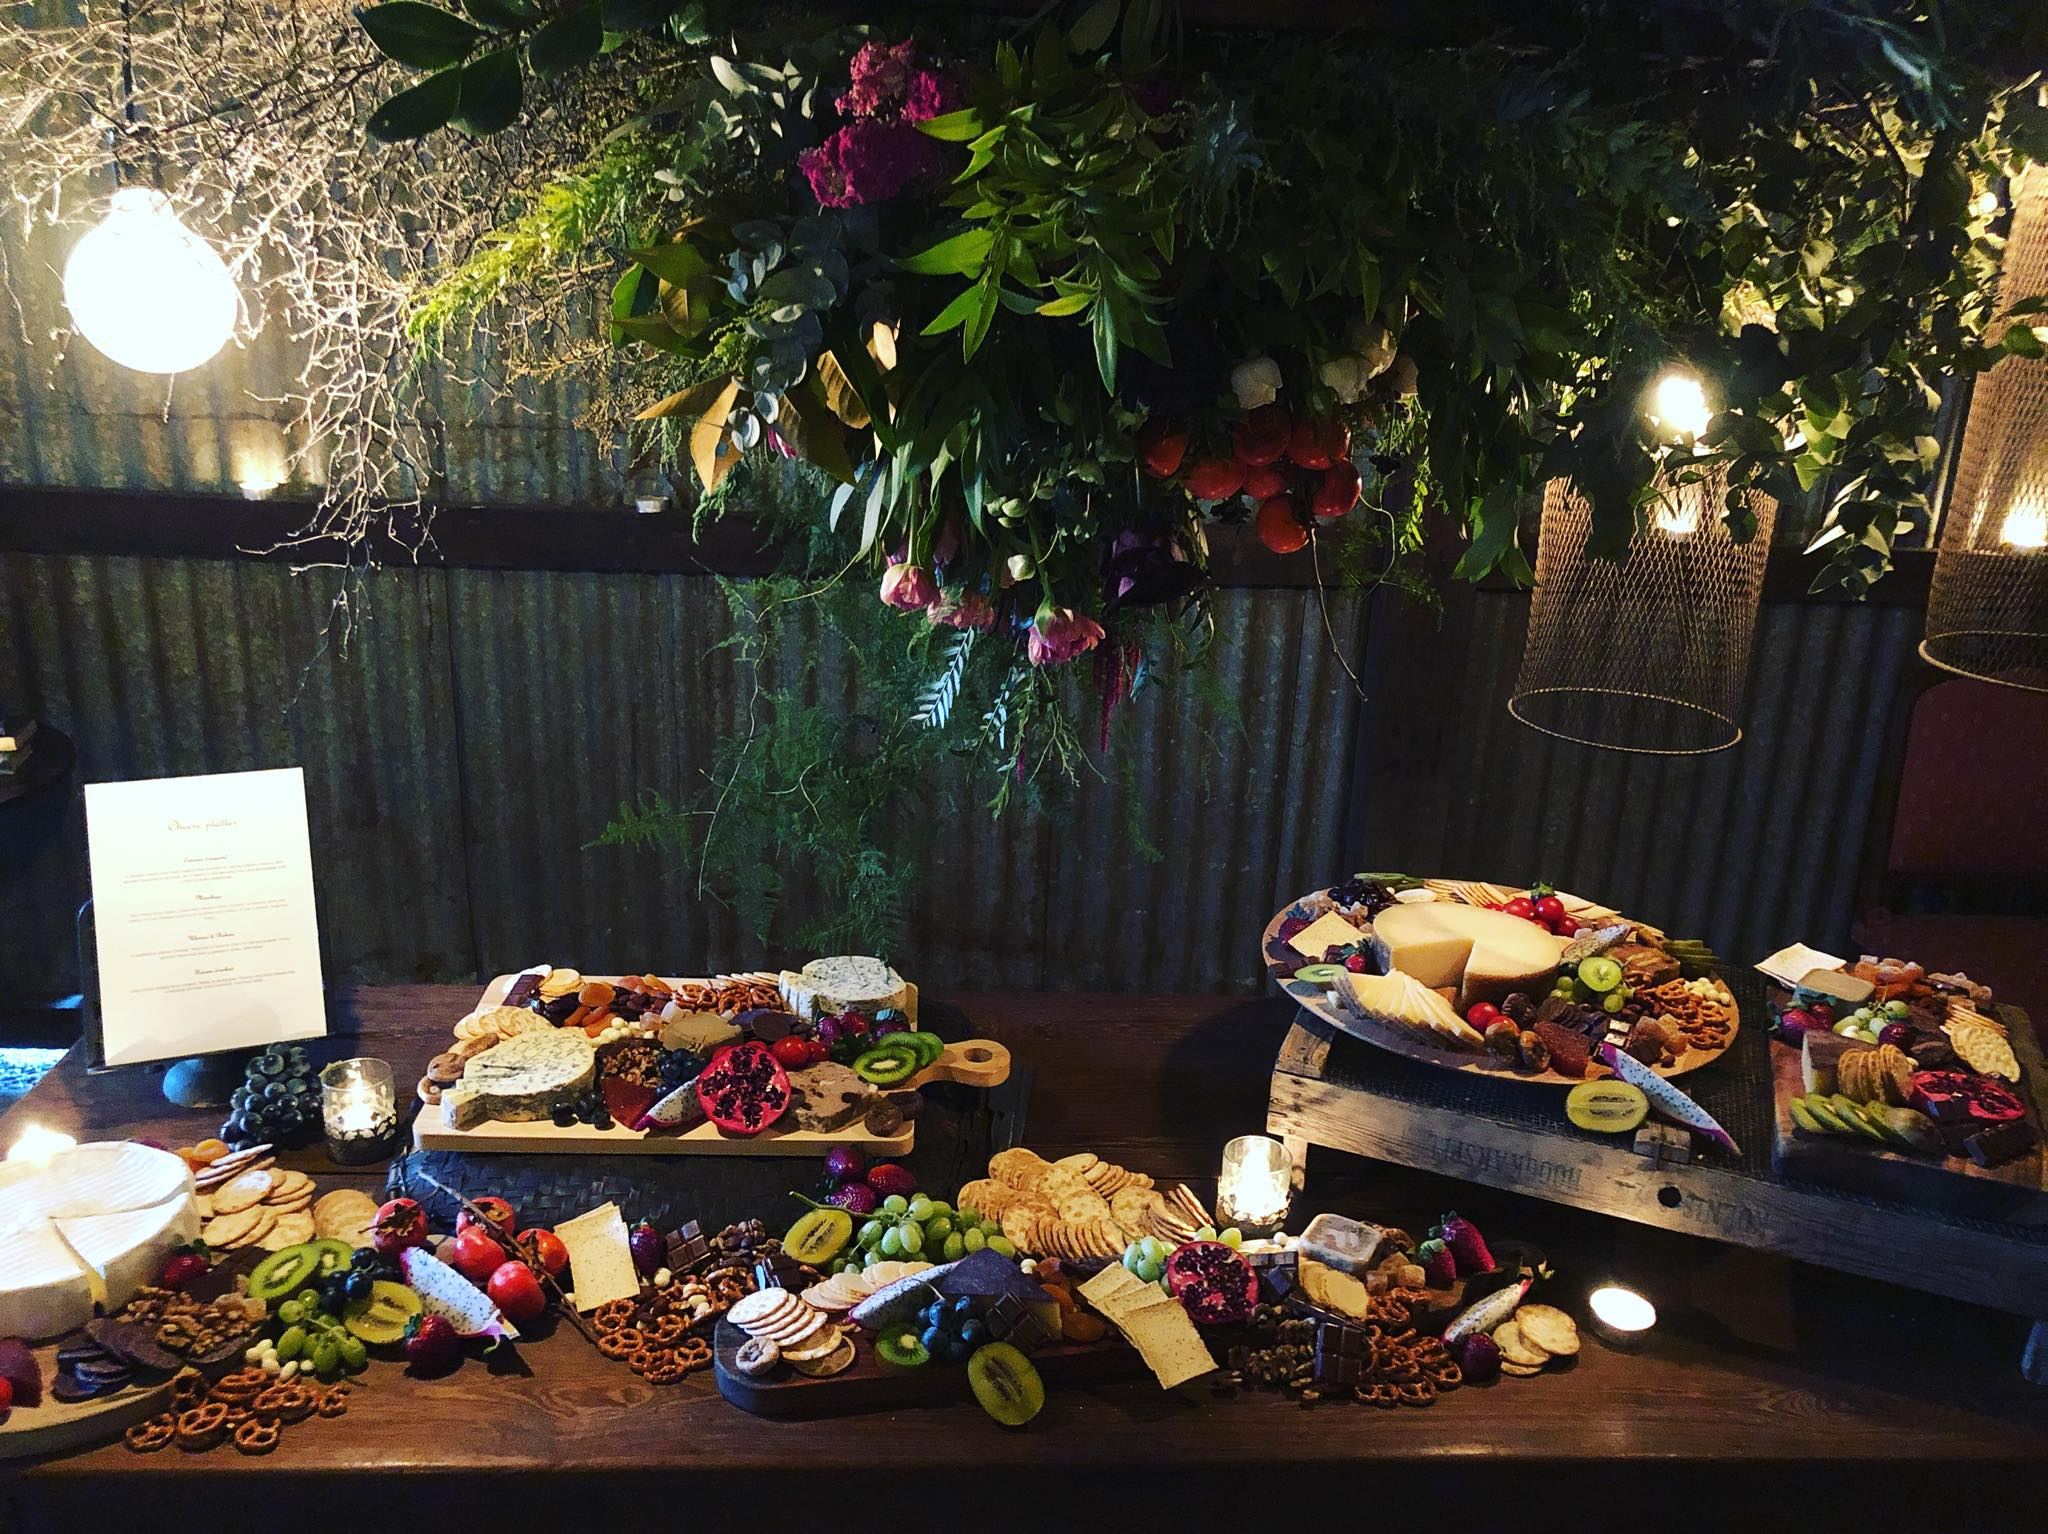 Cheese & Grazing Tables - Allowing guests to graze to their heart's content is a brilliant way to inject some personality into an event.